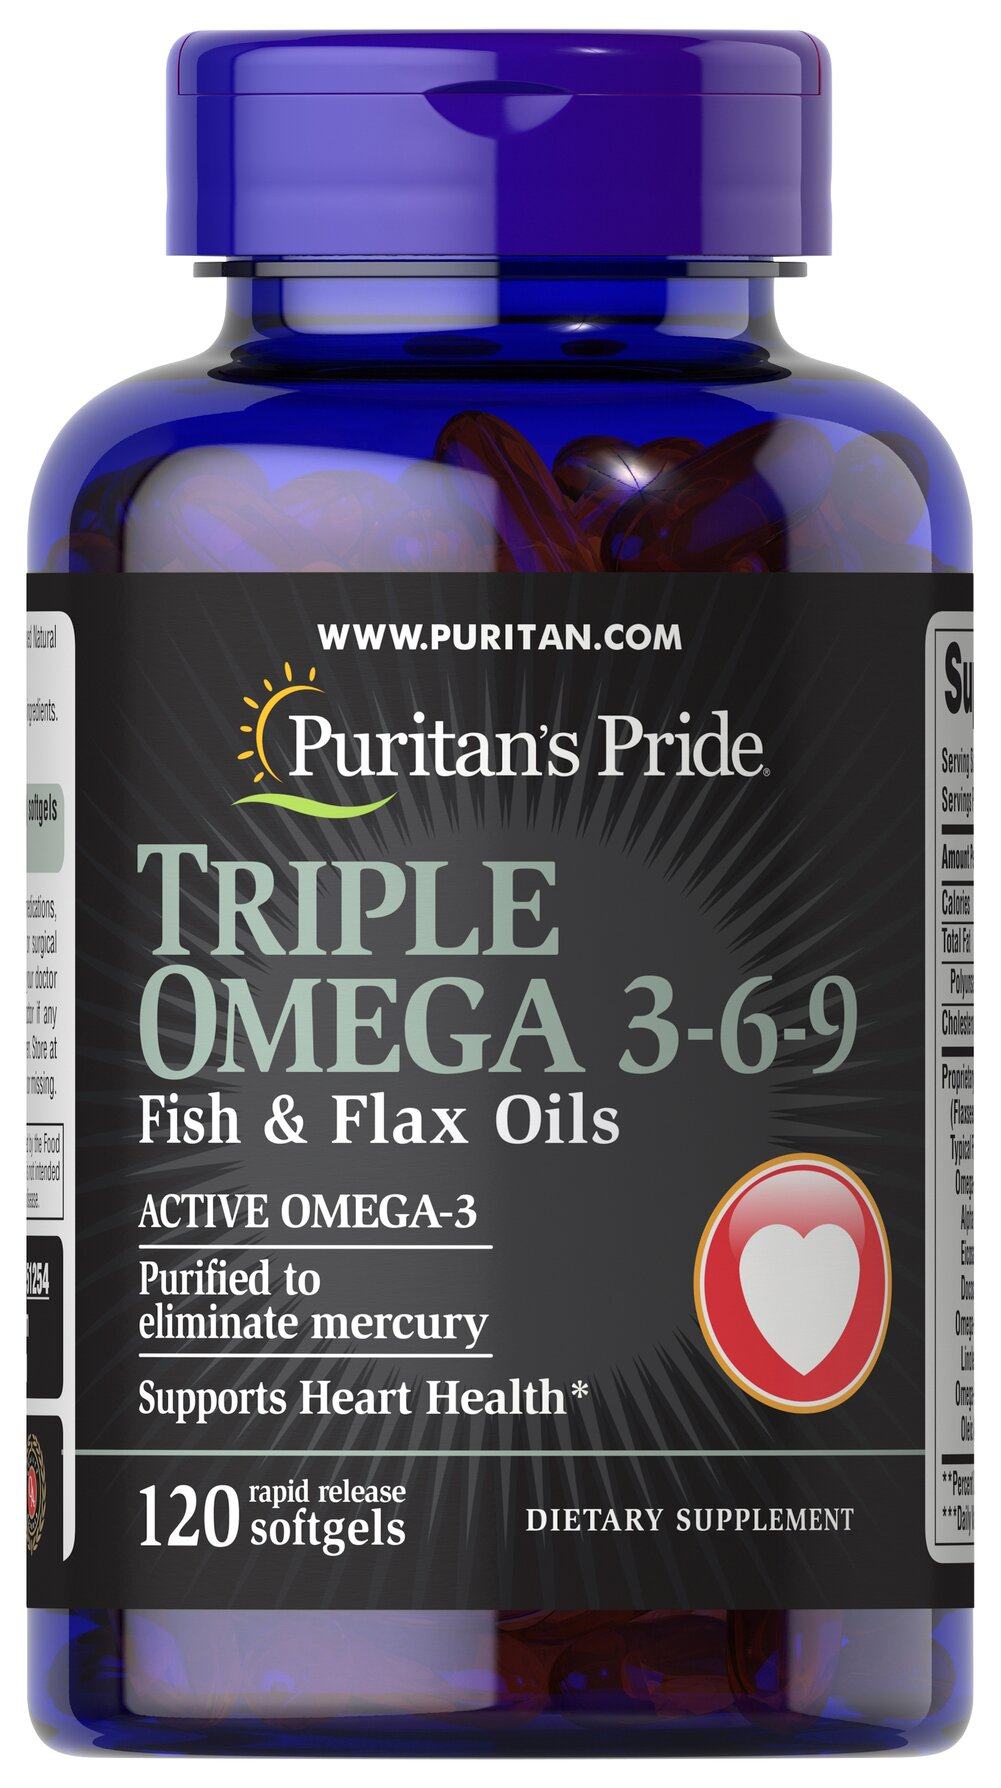 "Triple Omega 3-6-9 Fish & Flax Oils <p>Contains Omega-3, Omega-6 and Omega-9 – the ""good"" fats important for cellular, heart and metabolic health.**  </p><p>TRIPLE OMEGA 3-6-9 Fish and Flax Oils contain a proprietary blend of essential oils, including Flaxseed Oil and  Ester Omega Fish Oil. </p><p>Supports Heart Health.* </p><strong></strong><p><strong>Purified to eliminate mercury.</strong></p> 120 Softgels  $20.59"